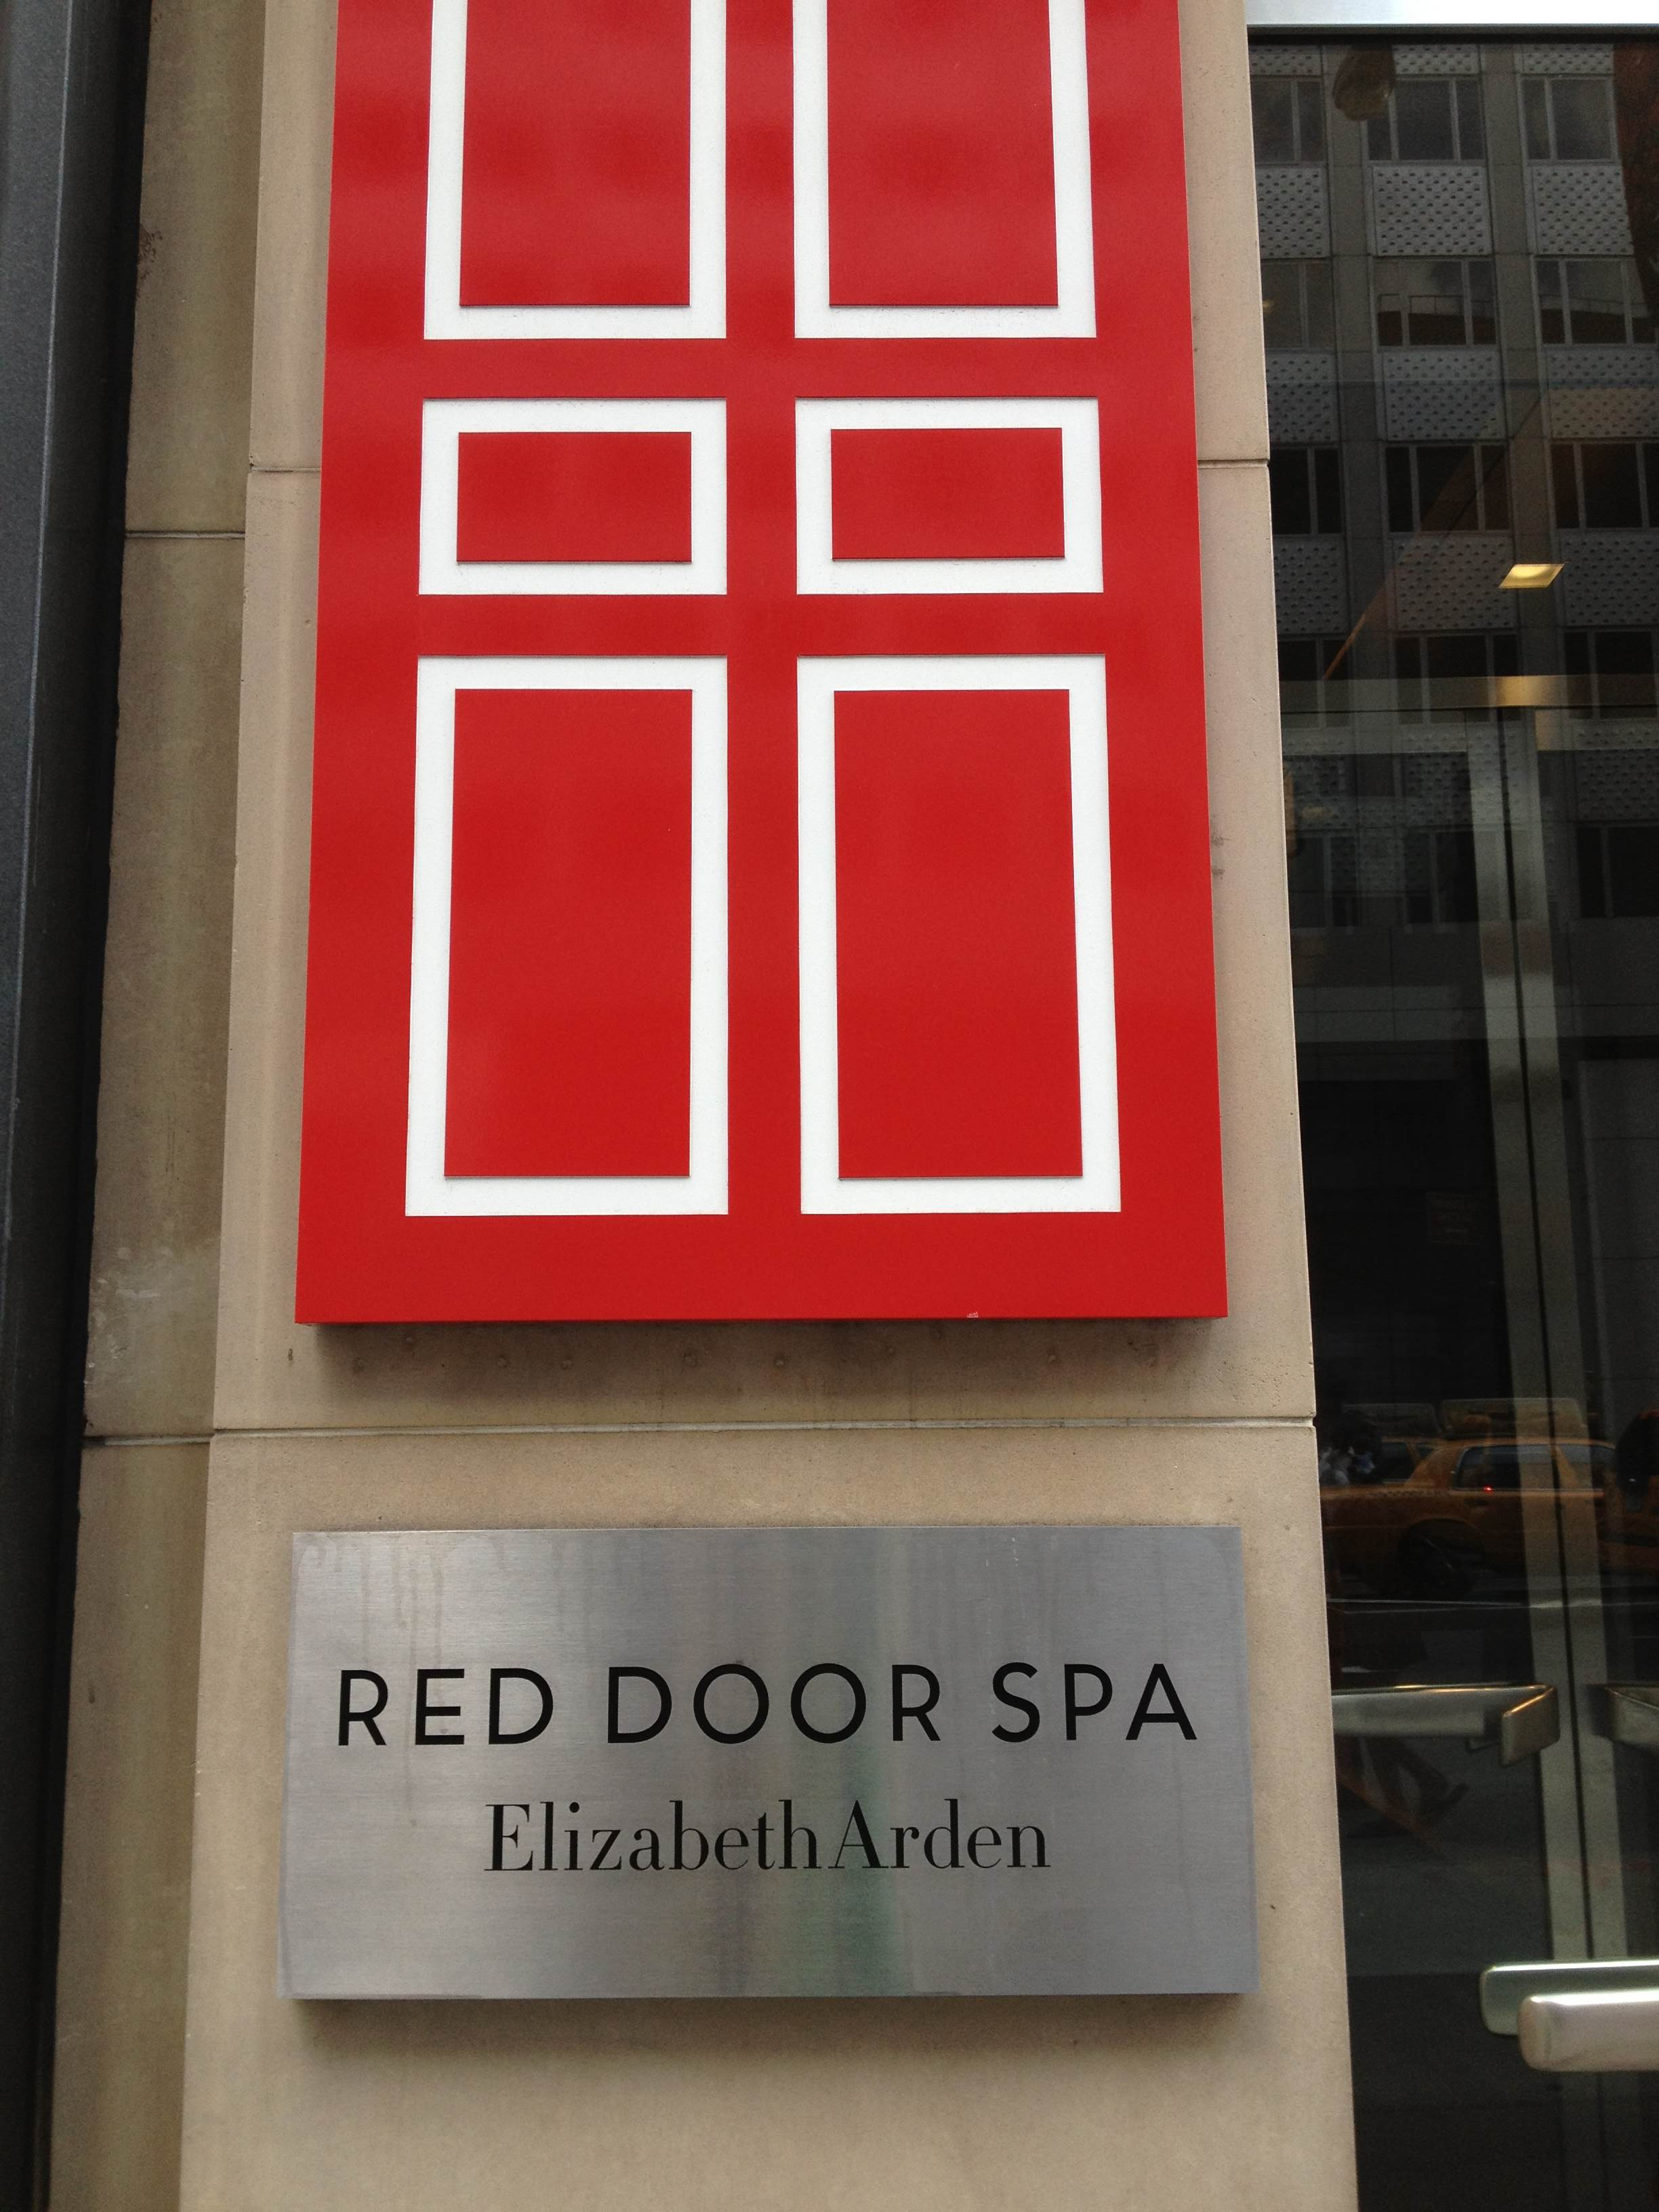 elizabeth arden red door spa entrance